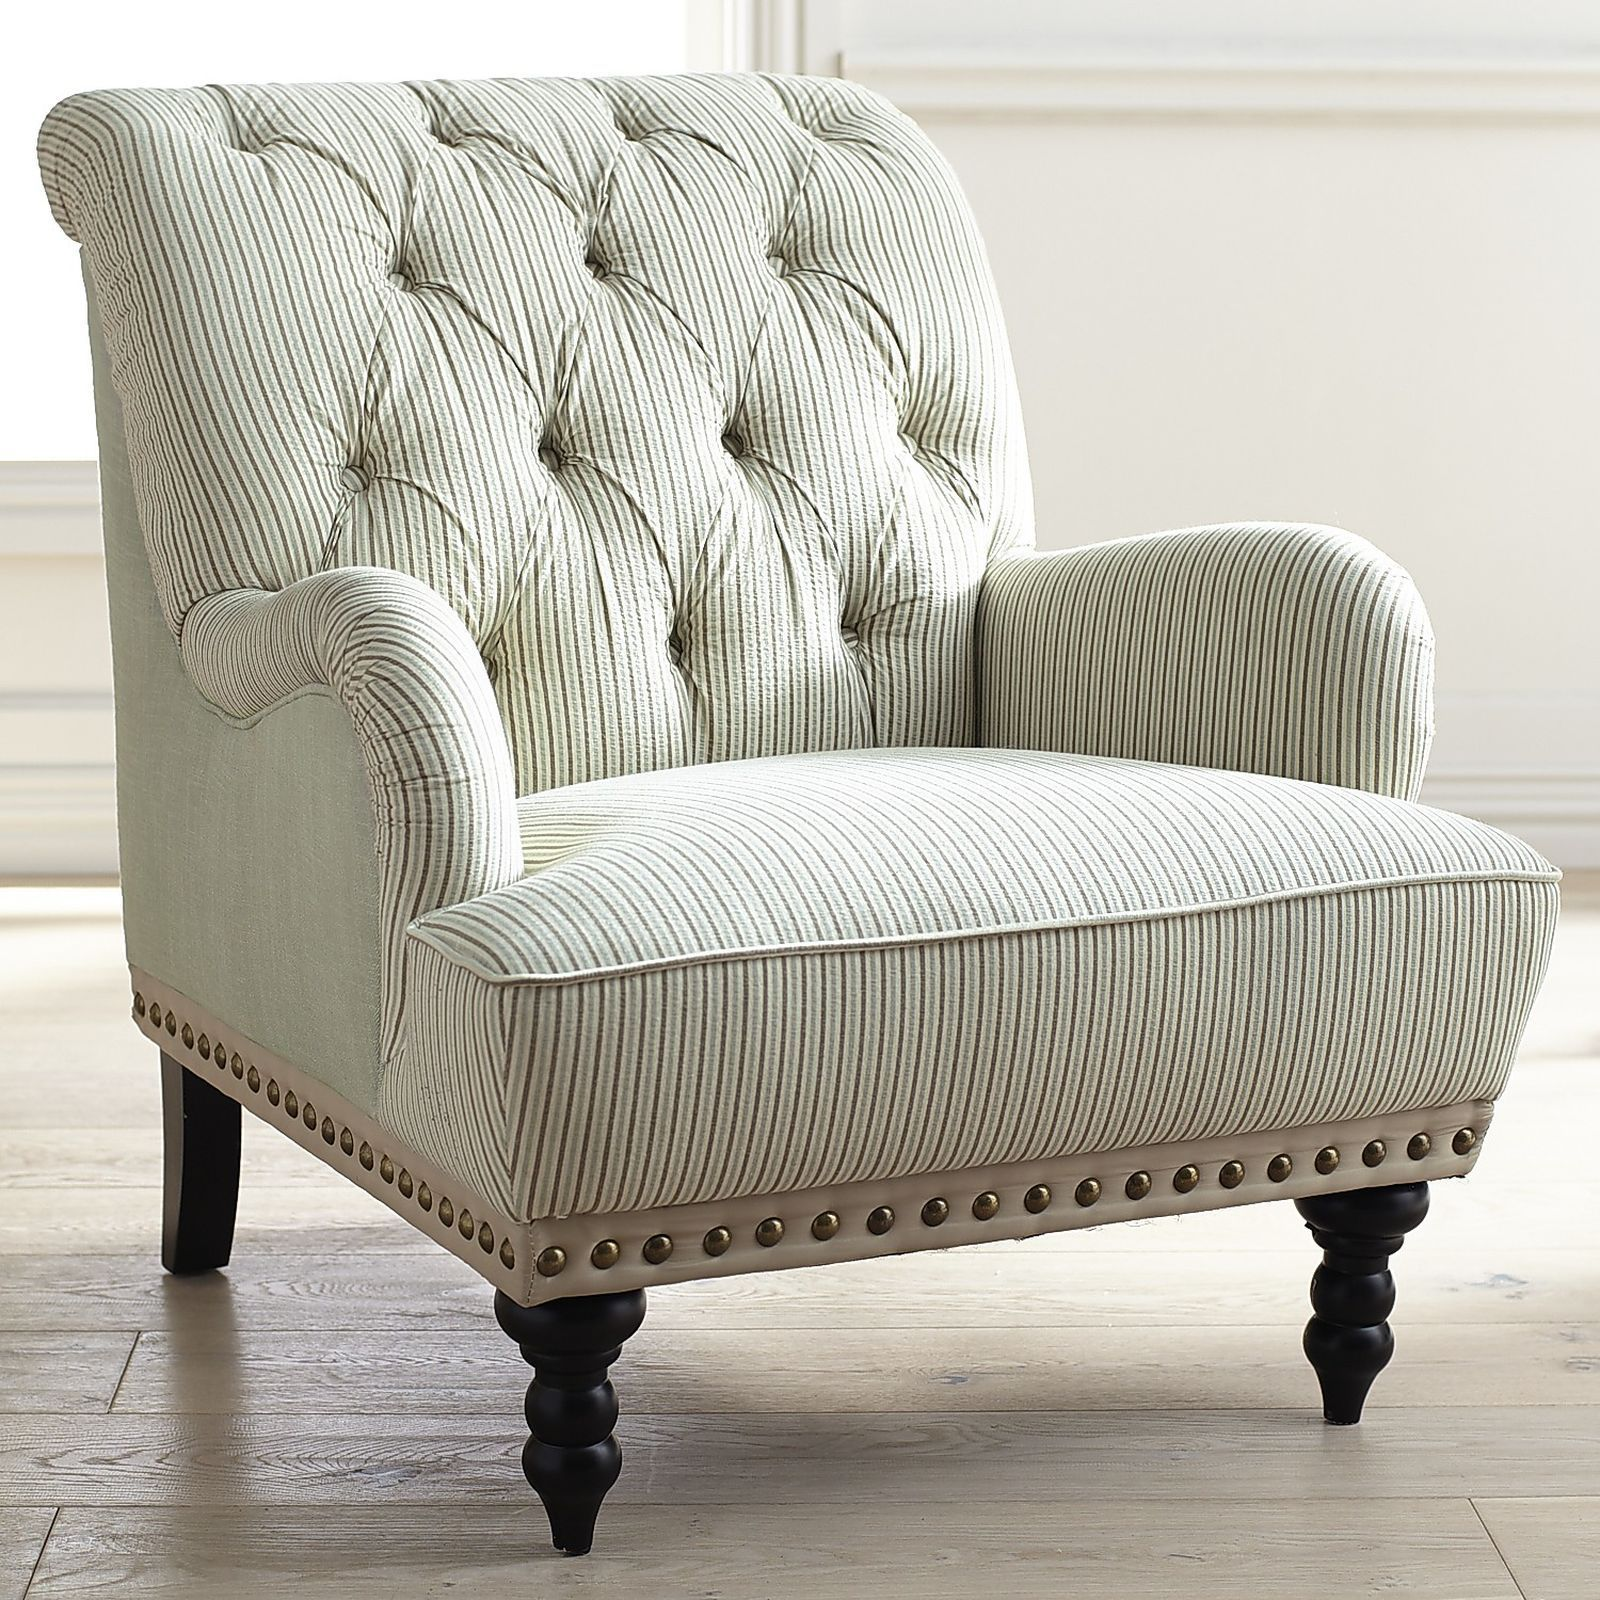 Sessel Gestreift Seersucker: Not Just For Granddad's Suits Anymore. Overstuffed And Tufted, This Dandy Armcha… | Brown And Blue Living Room, Overstuffed Armchair, Living Room Update